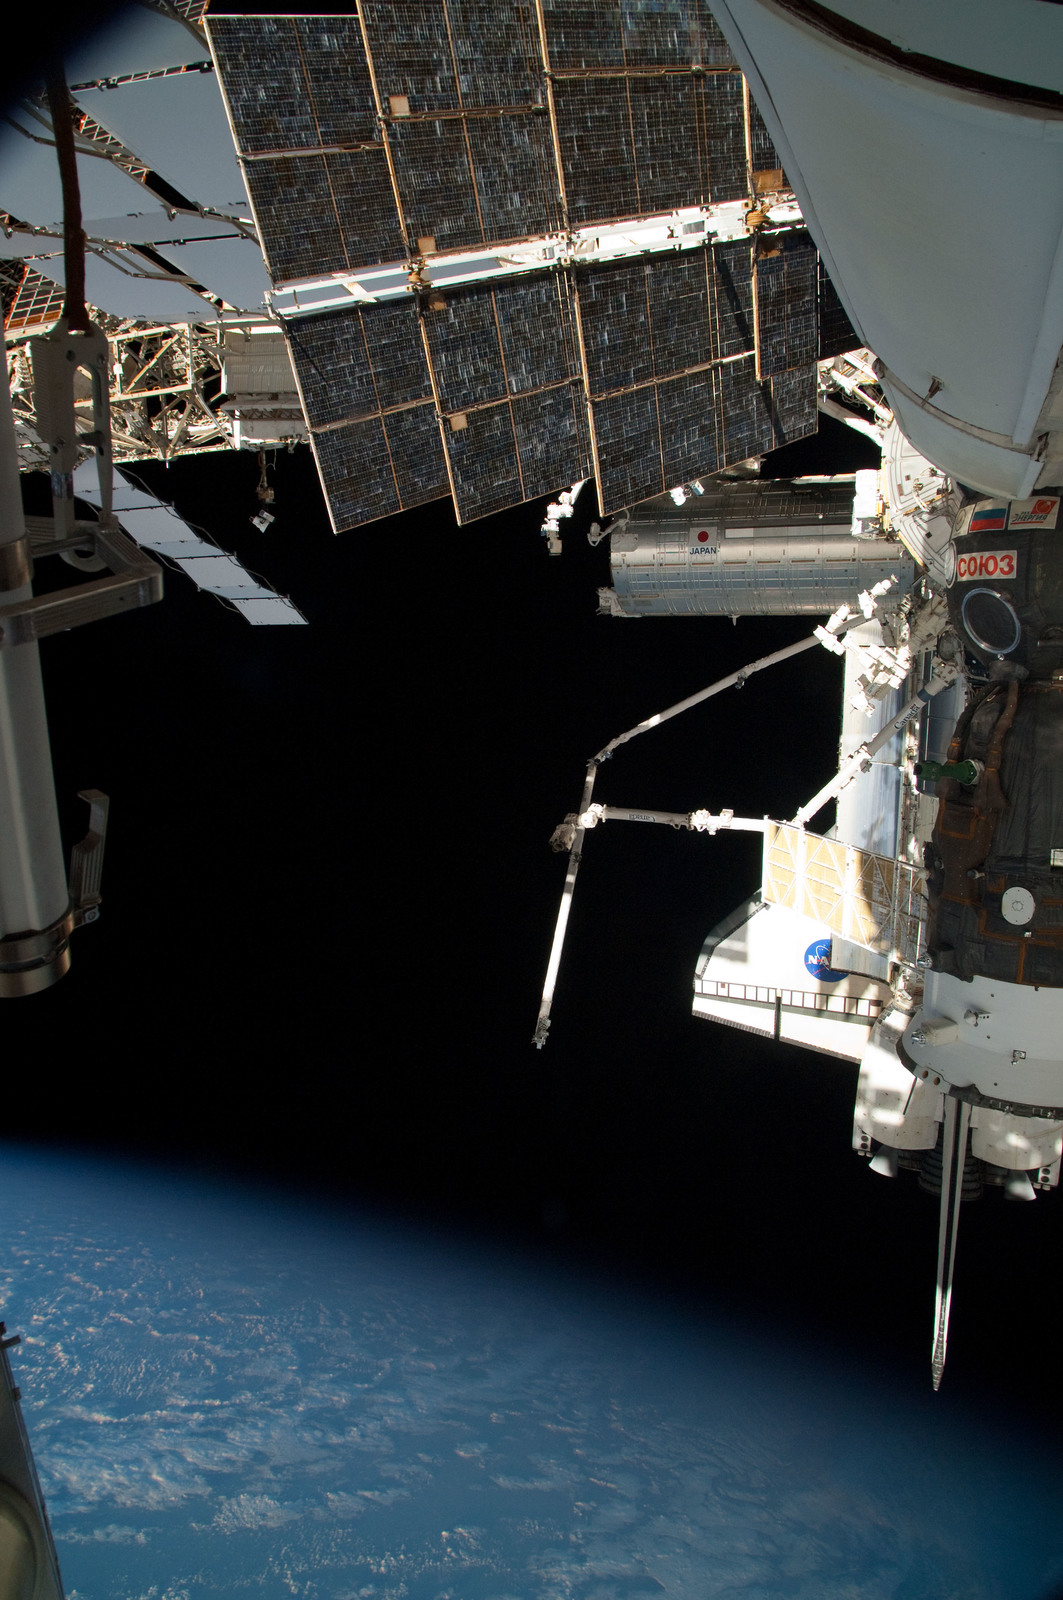 S126E025048 - STS-126 - View of ISS, Docked Soyuz and Endeavour